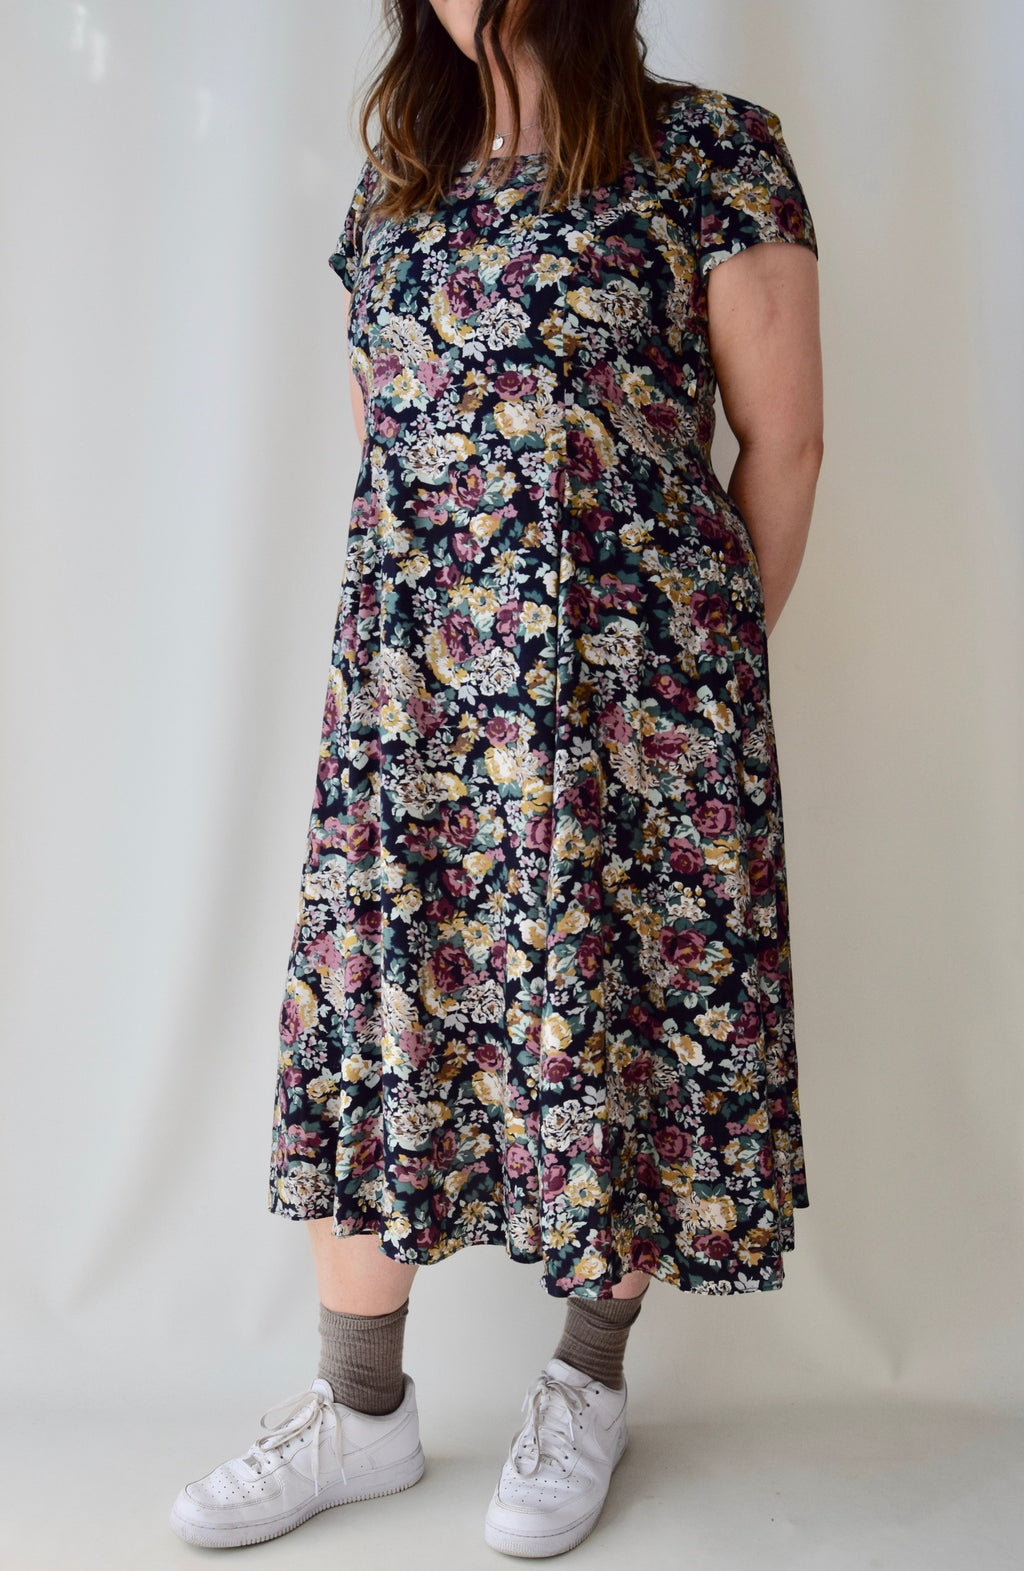 Muted Floral Rayon 90's Dress